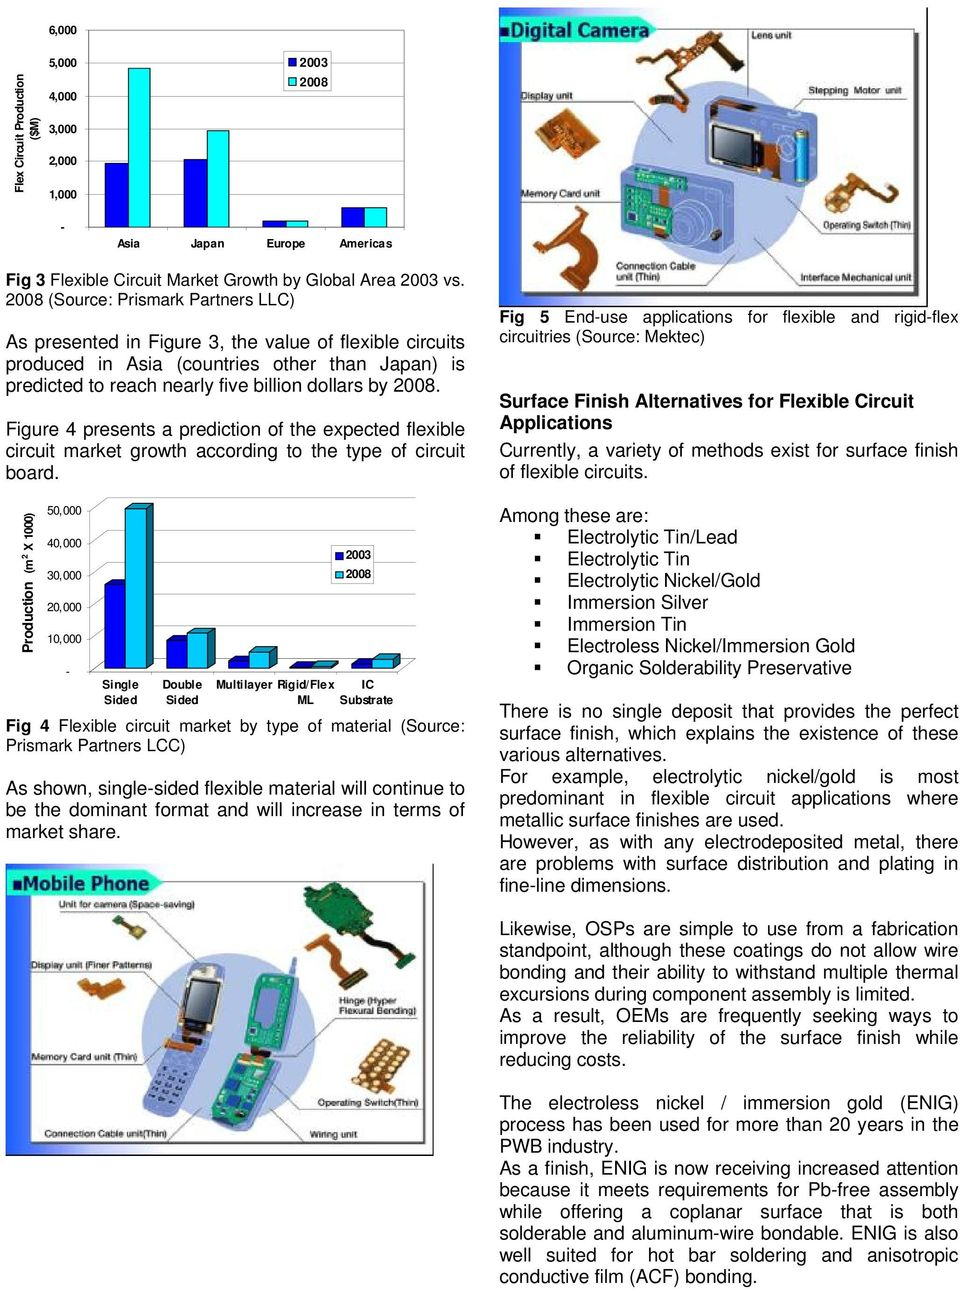 Properties Of High P Enig Process On Flexible Boards Pdf Rigidflex Circuit Osp Lead Free Pcb Printed Board Figure 4 Presents A Prediction The Expected Market Growth According To Type